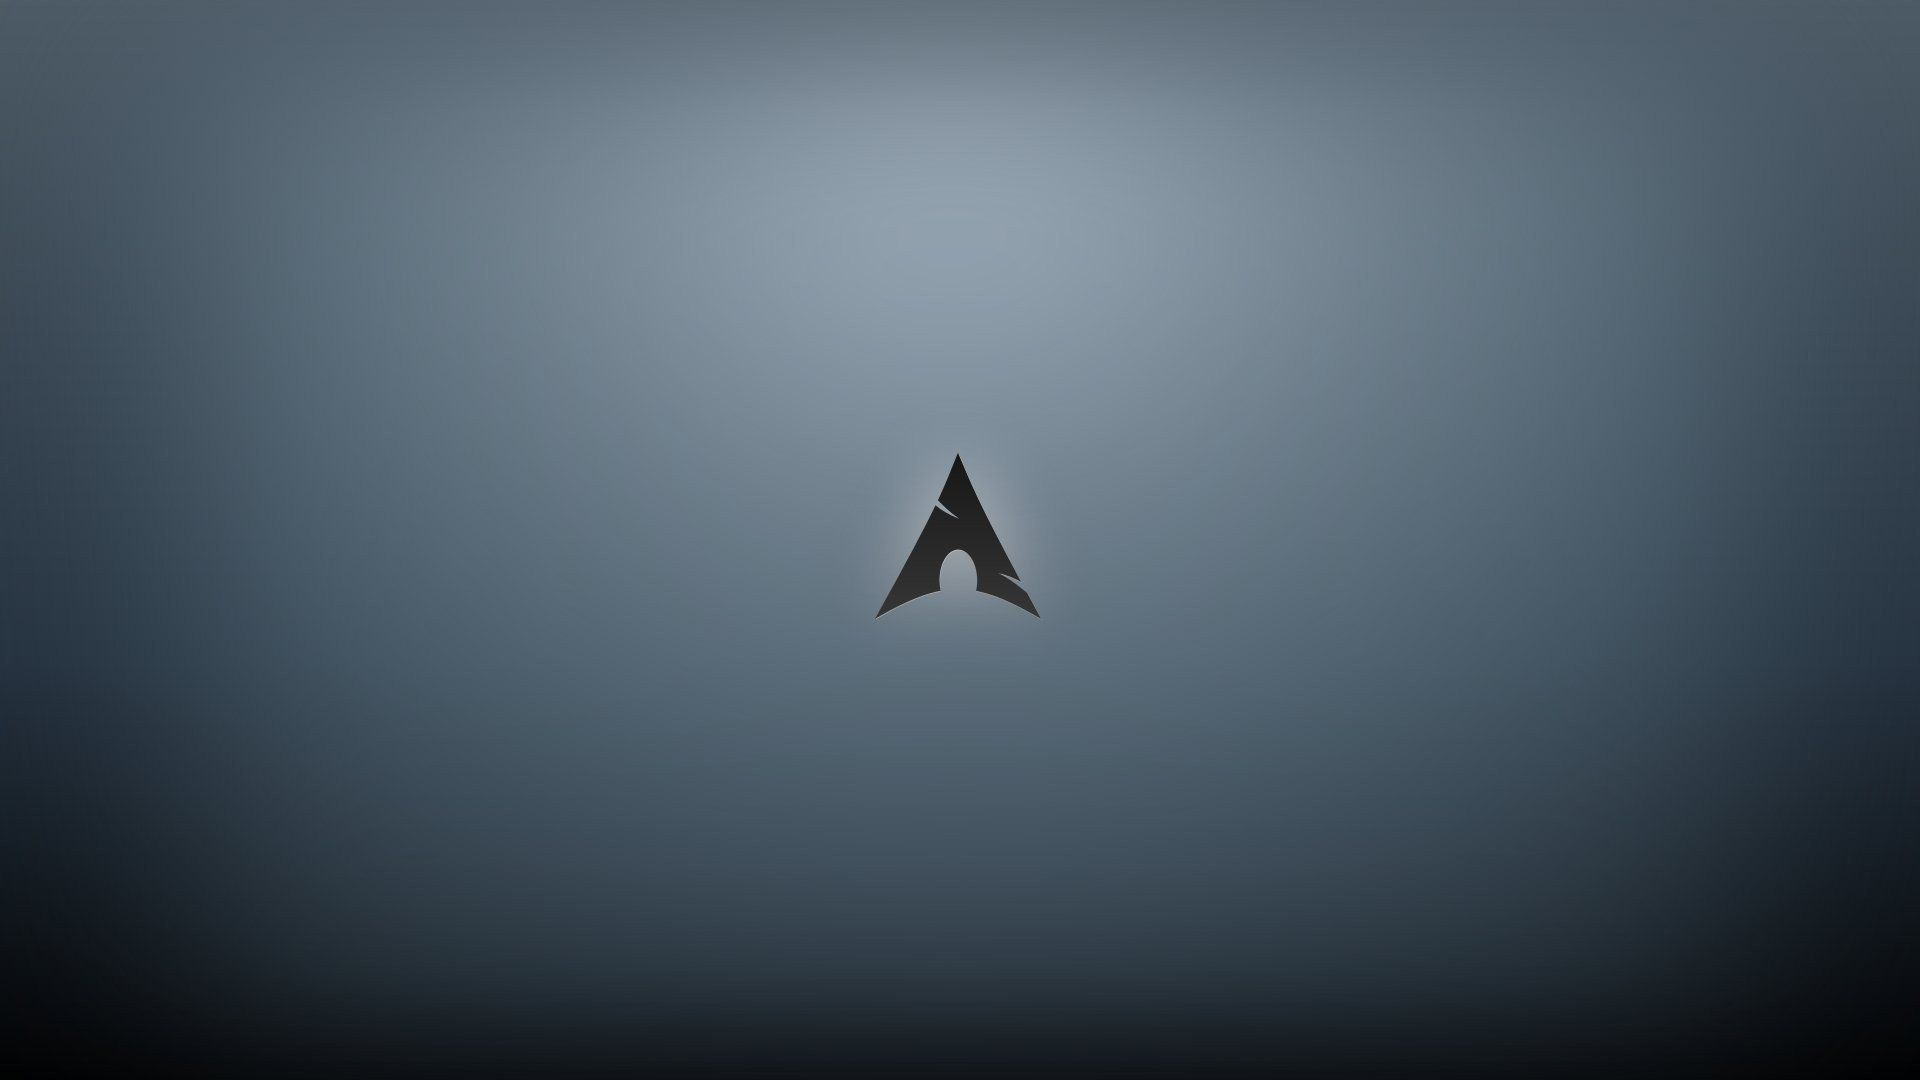 Arch wallpaper for laptop